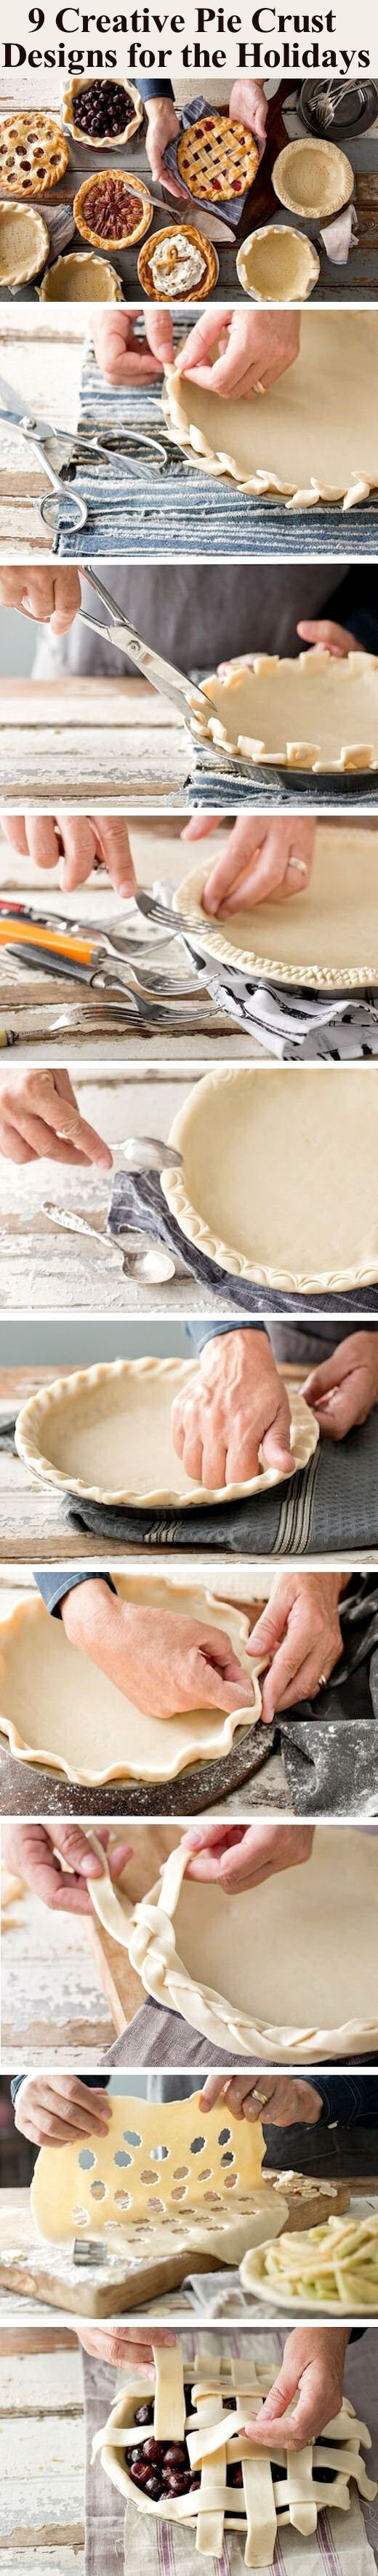 9 Creative Pie Crust Designs for the Holidays delicious baking recipe pie thanksgiving holidays recipes christmas dessert recipe dessert recipes food tutorials food tutorial